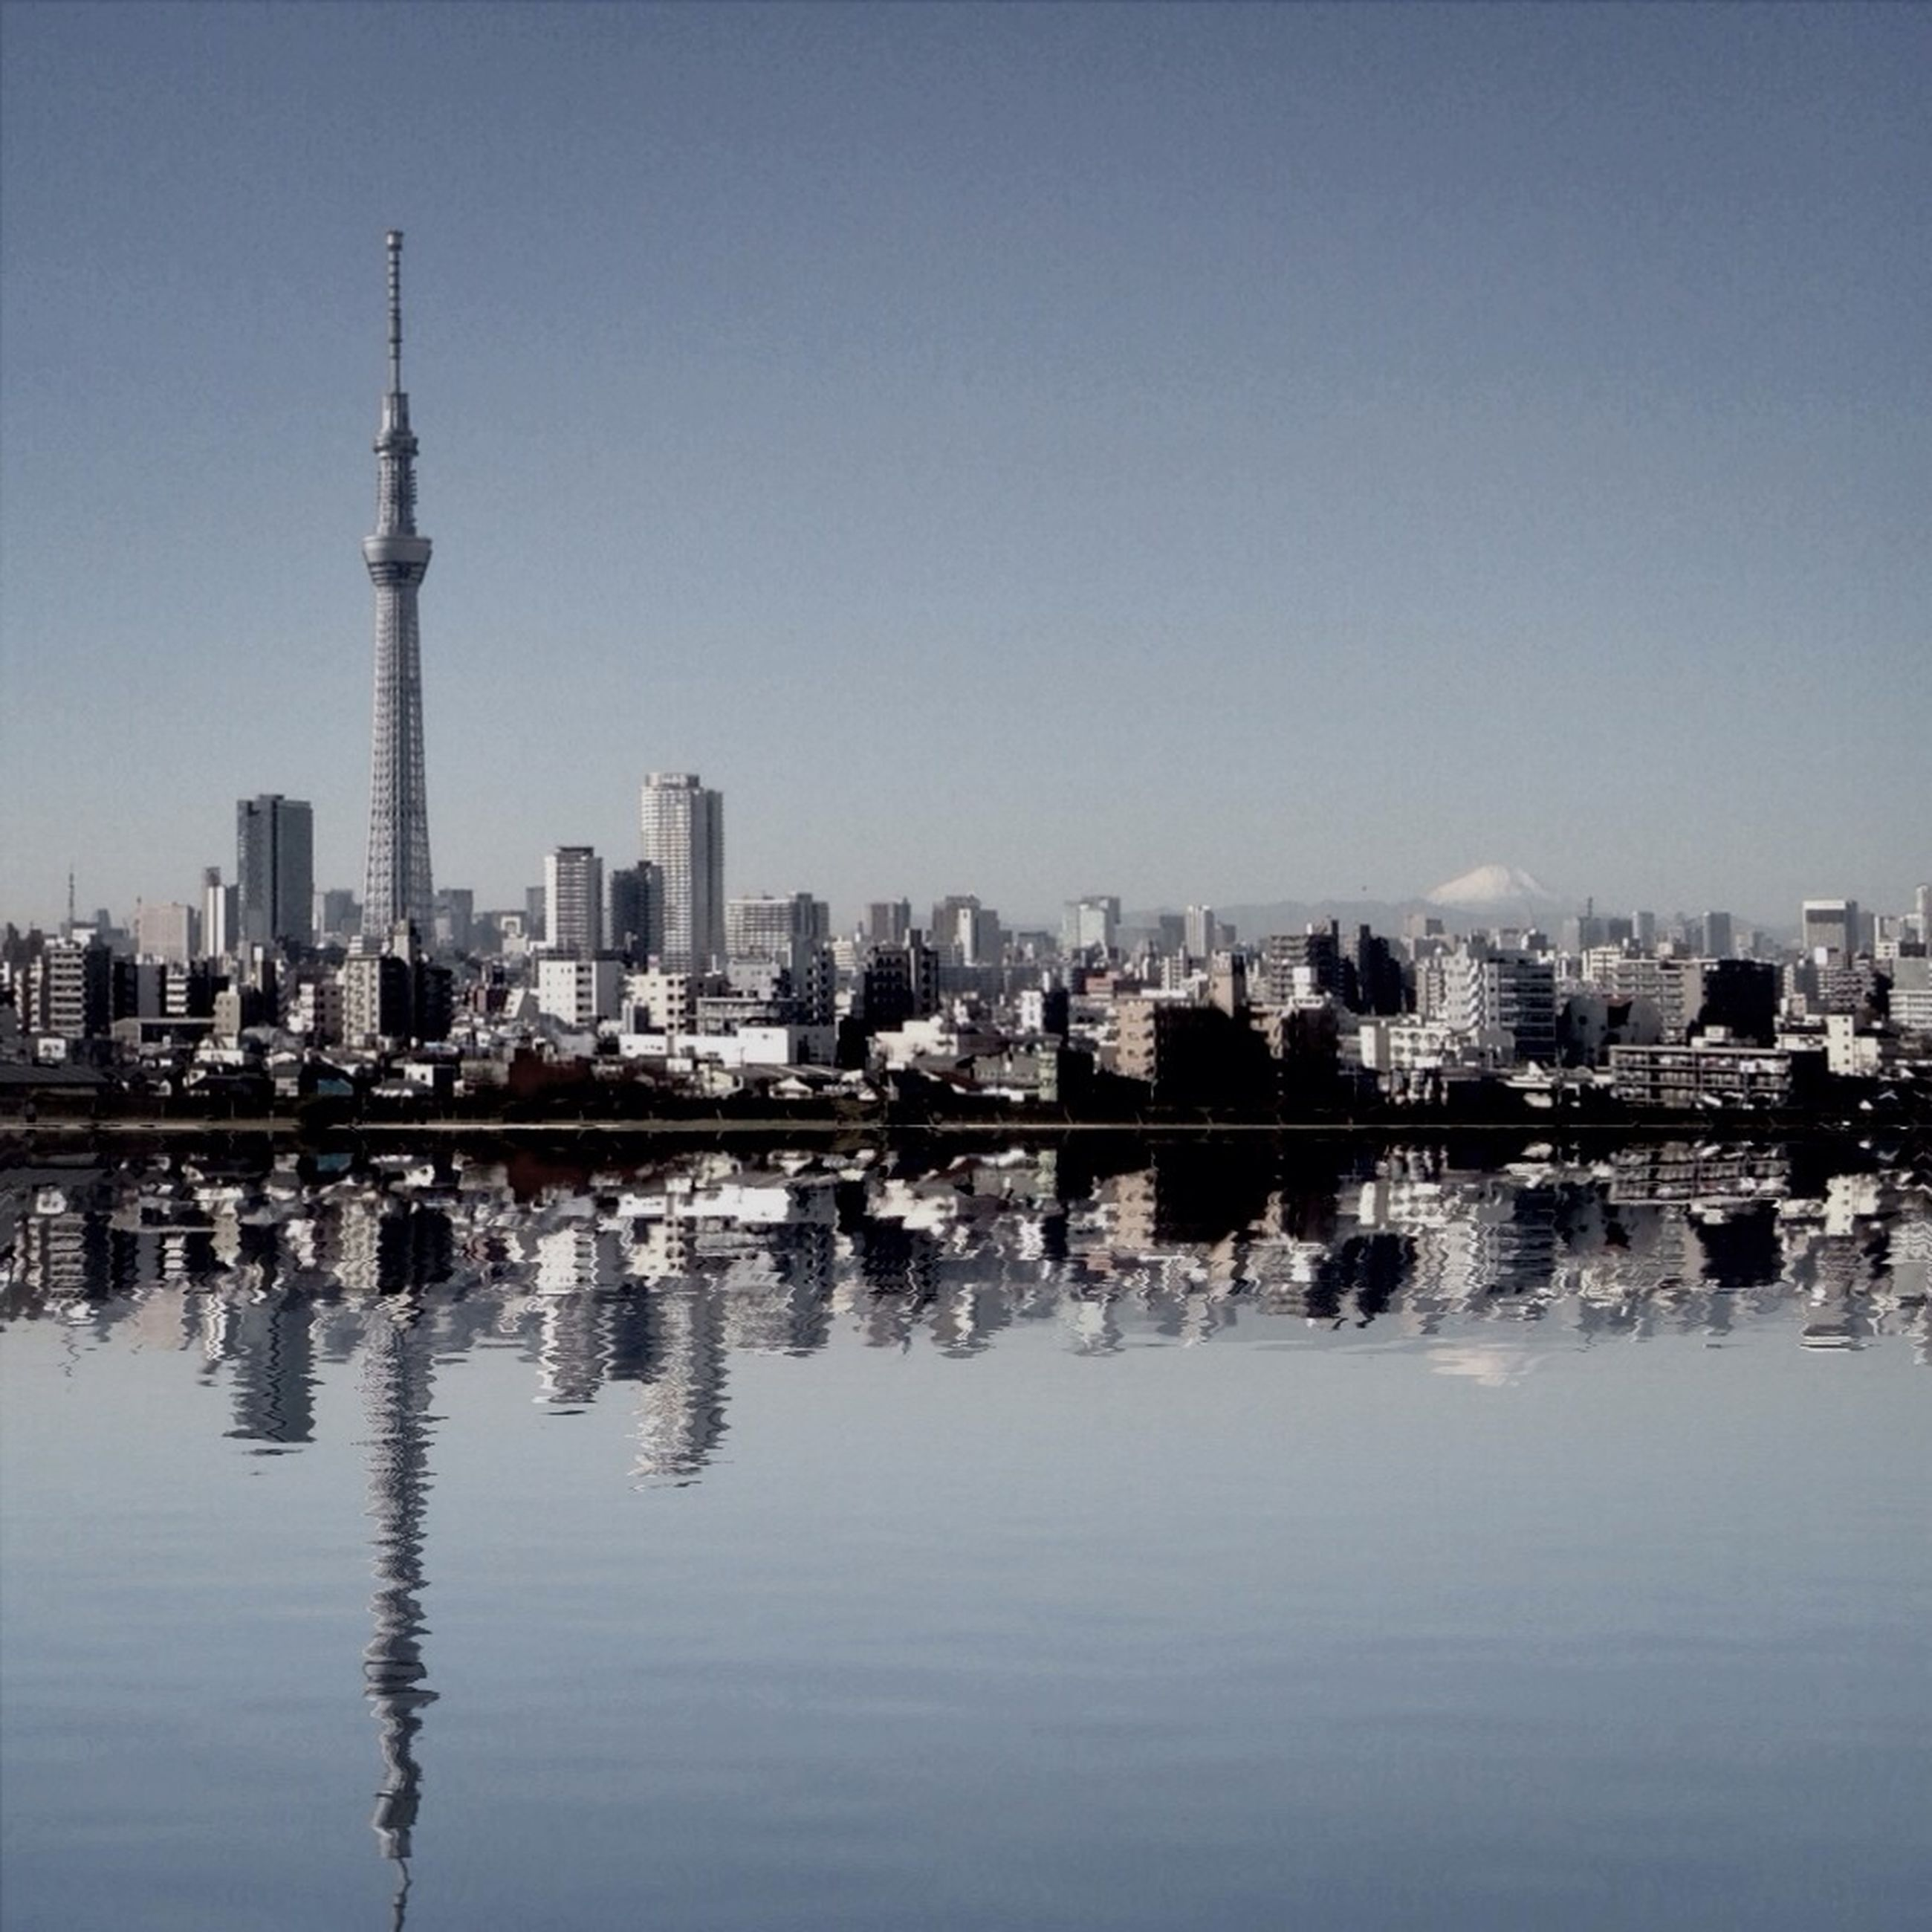 building exterior, architecture, city, built structure, skyscraper, water, cityscape, waterfront, urban skyline, tall - high, reflection, tower, river, clear sky, modern, office building, skyline, financial district, capital cities, copy space